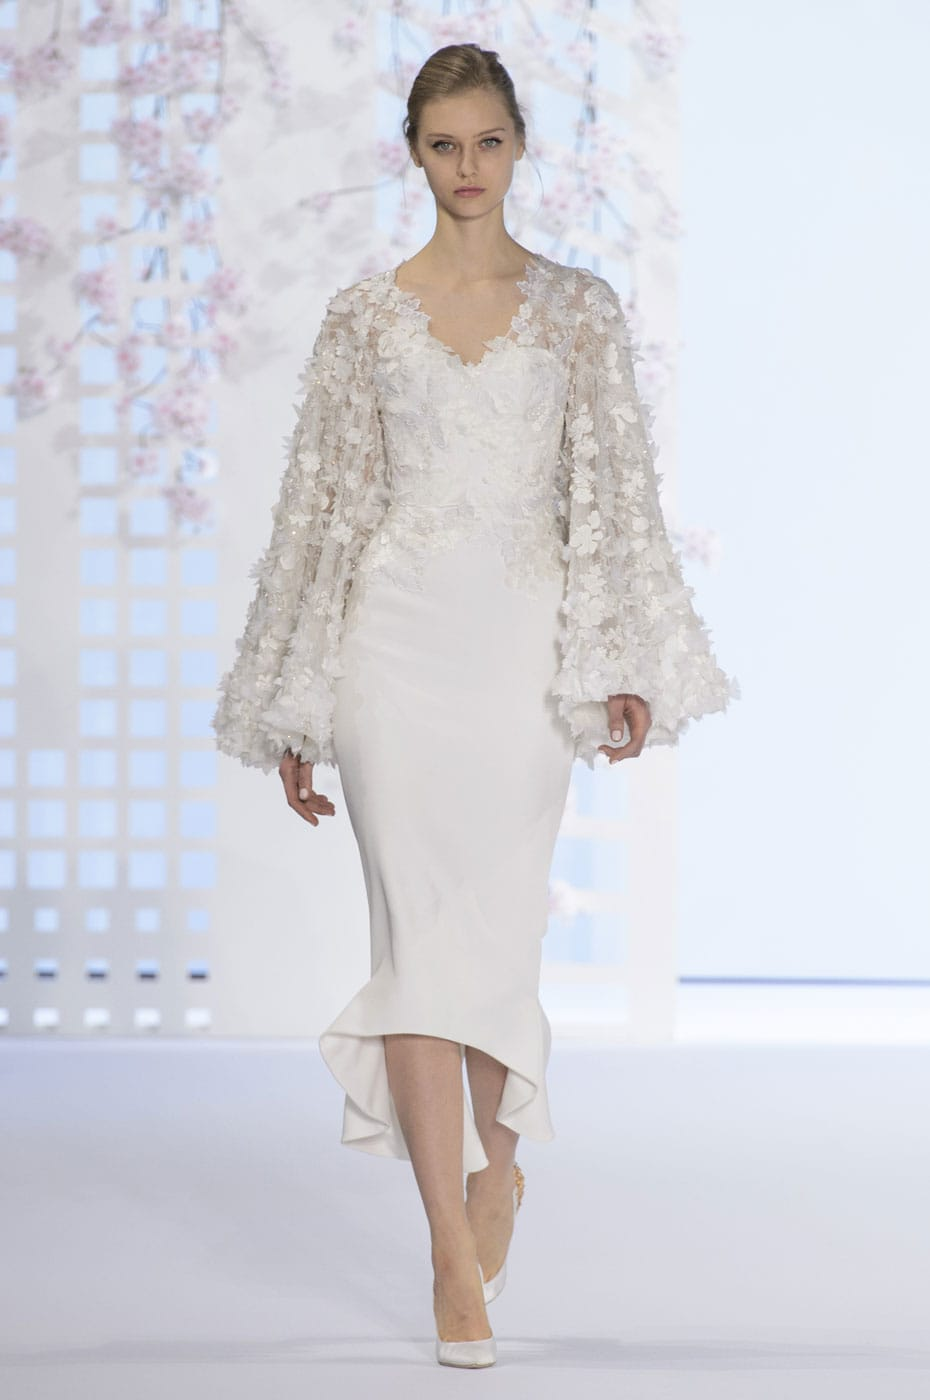 Ralph Russo Inspire Envy With Spring 2016 Couture